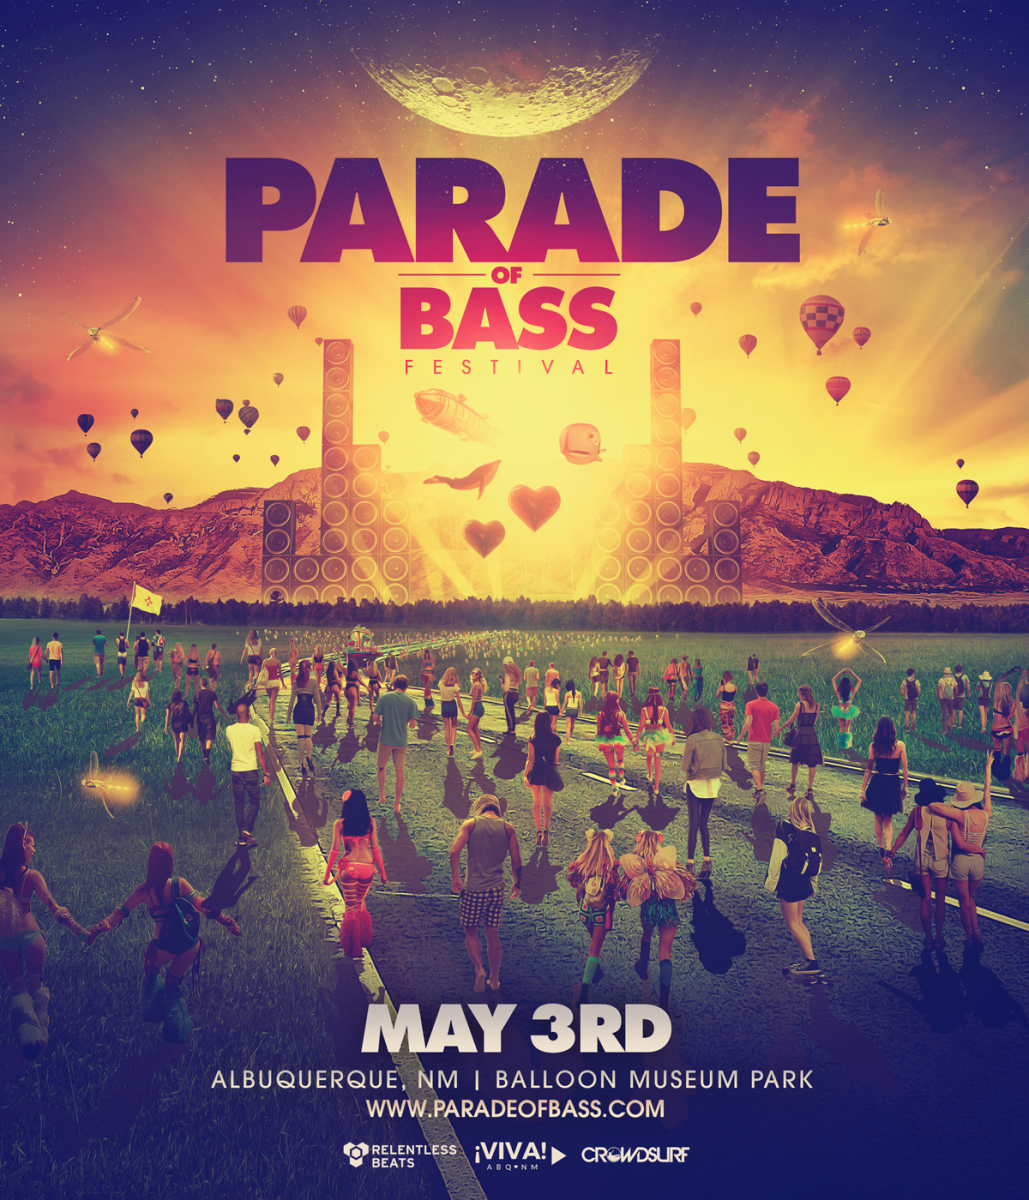 Flyer for Parade of Bass Festival